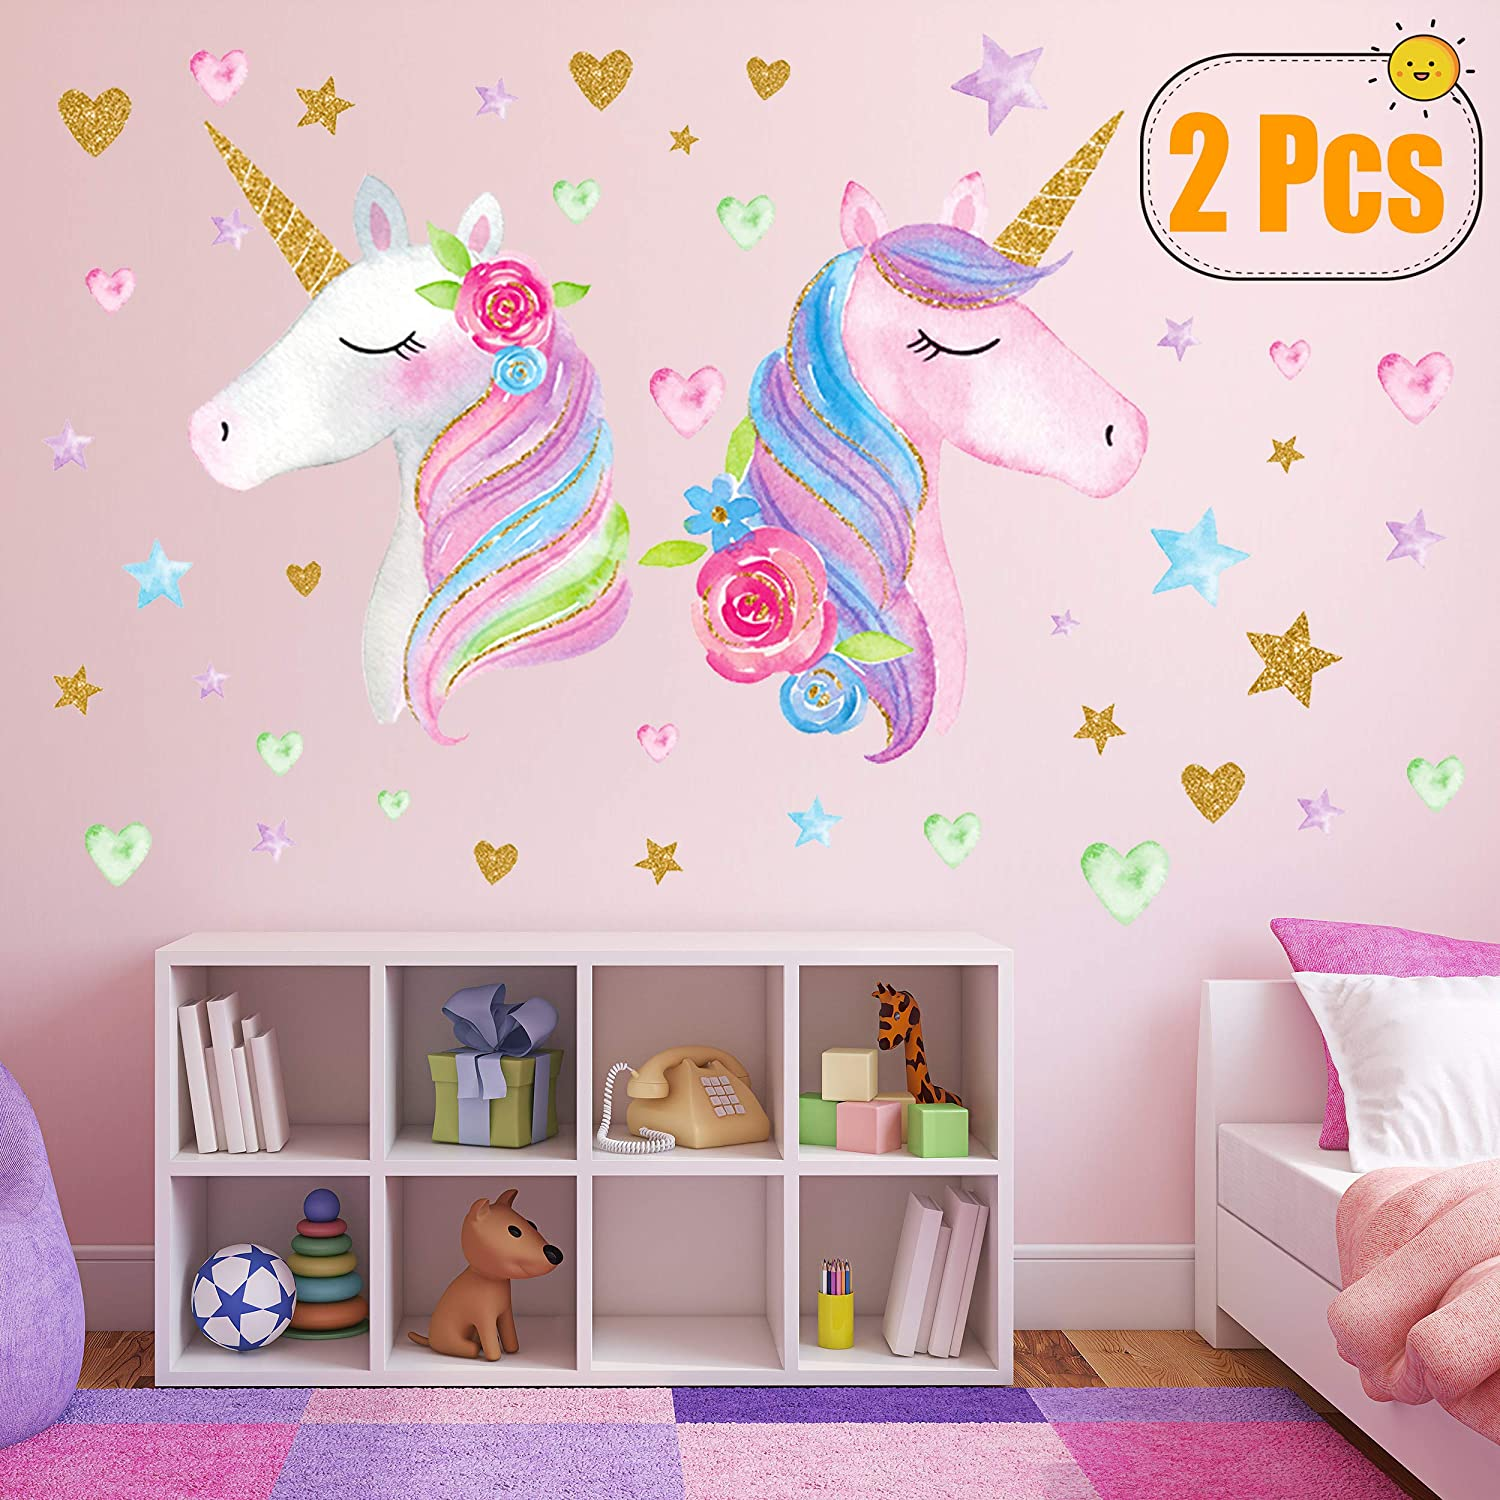 2 Sheets Large Size Unicorn Wall Decor,Removable Unicorn Wall Decals Stickers Decor für Gilrs Kids Bedroom Nursery Birthday Party Favor(Neasyth Store 9.99 $) (2 Pcs)